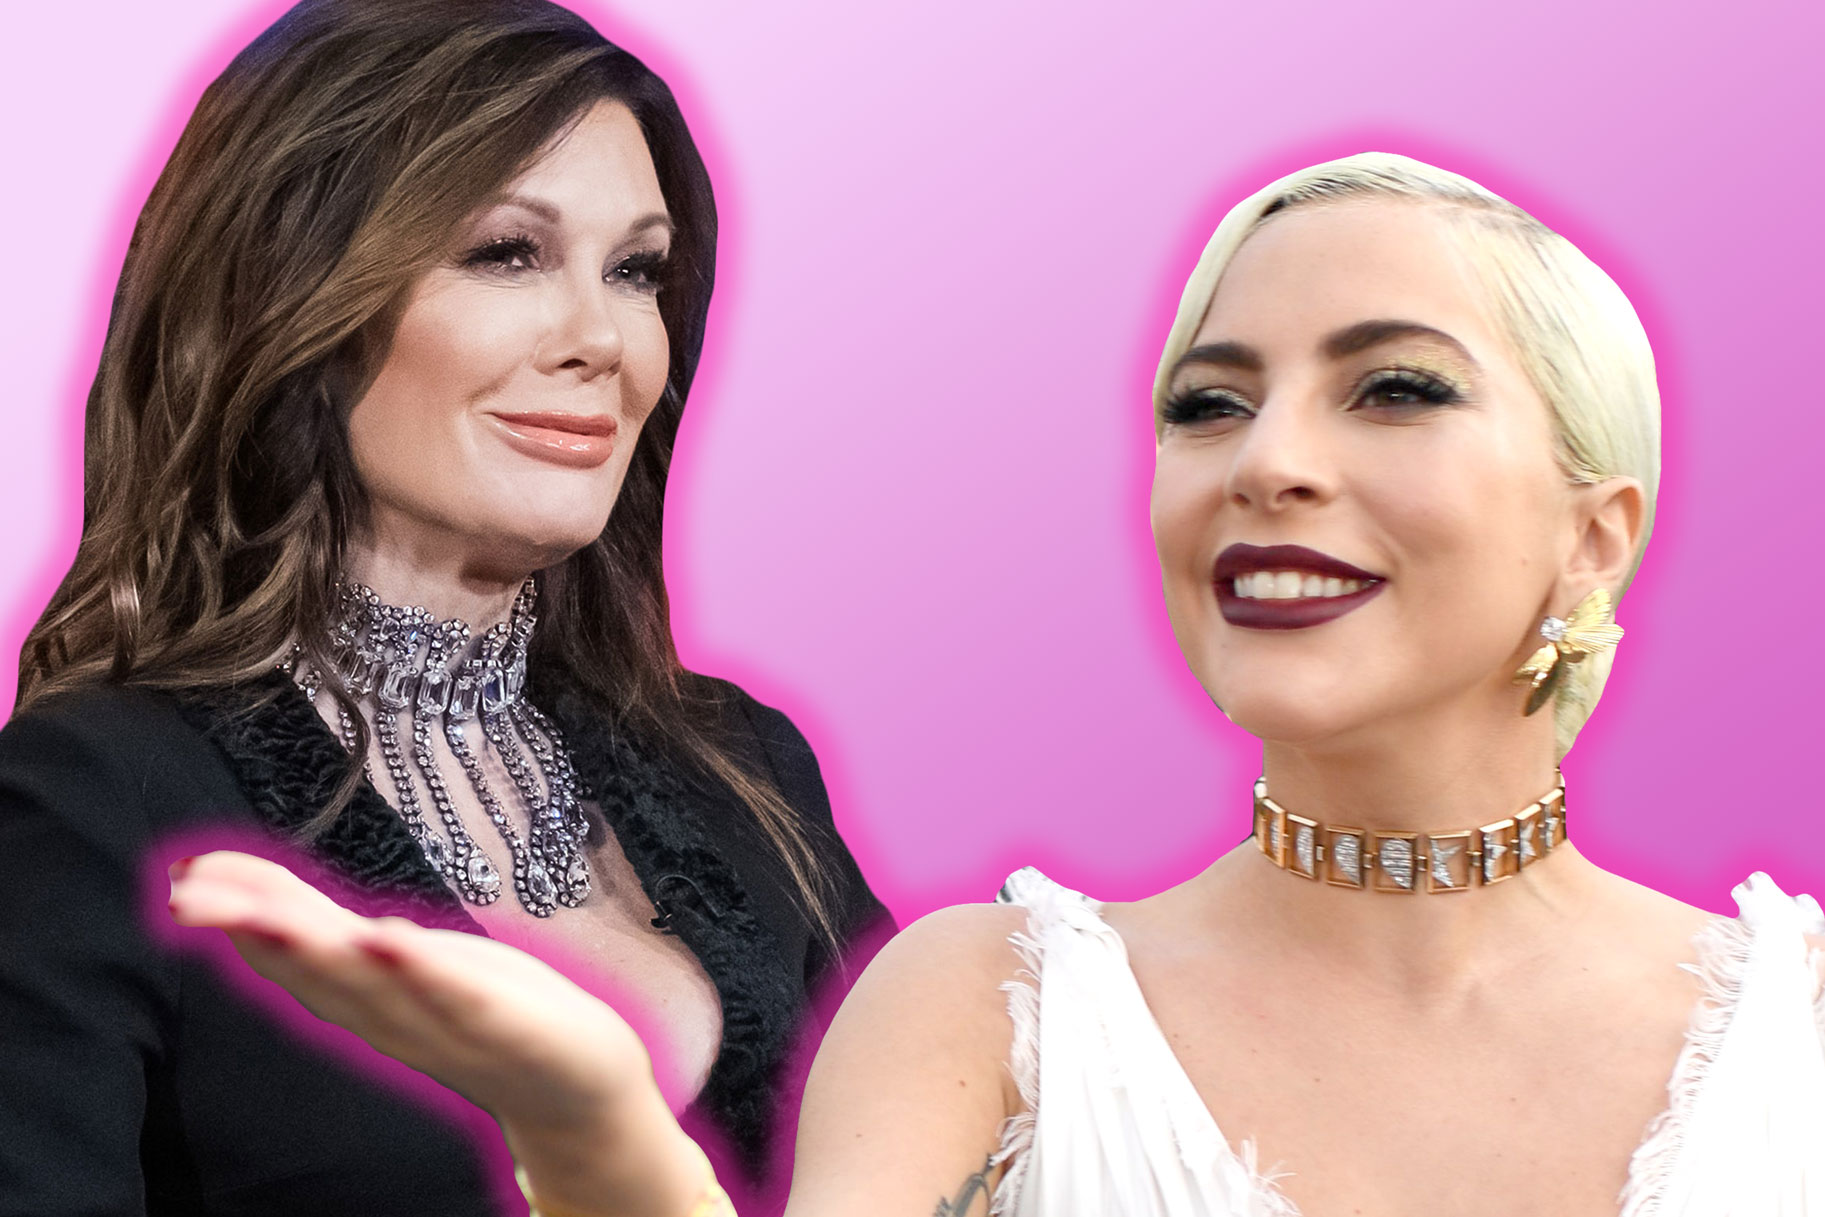 lisa-vanderpump-lady-gaga.jpg